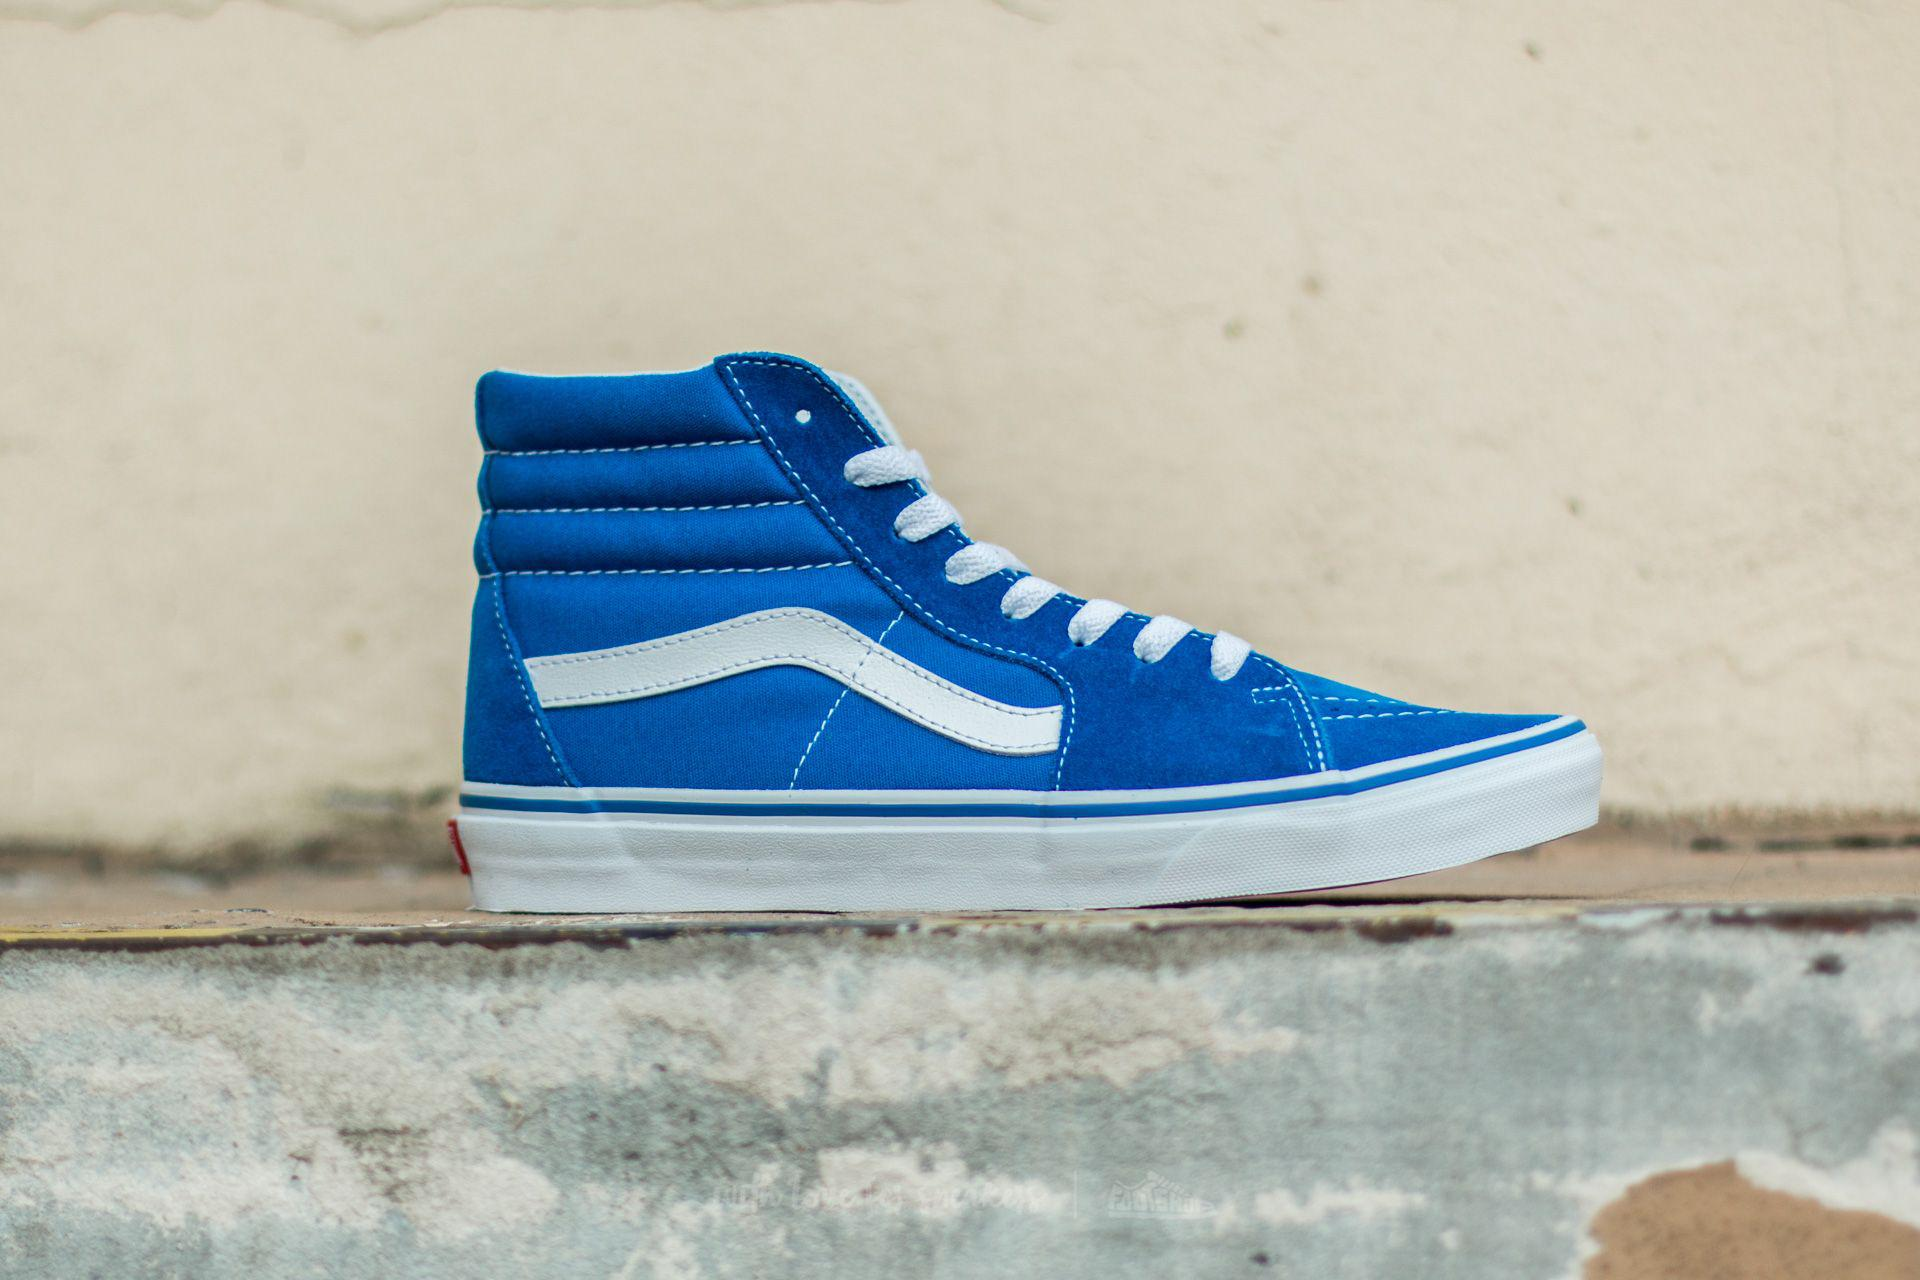 c43f2be0b4ac Lyst - Vans Sk8-hi (suede canvas) Imperial Blue in Blue for Men